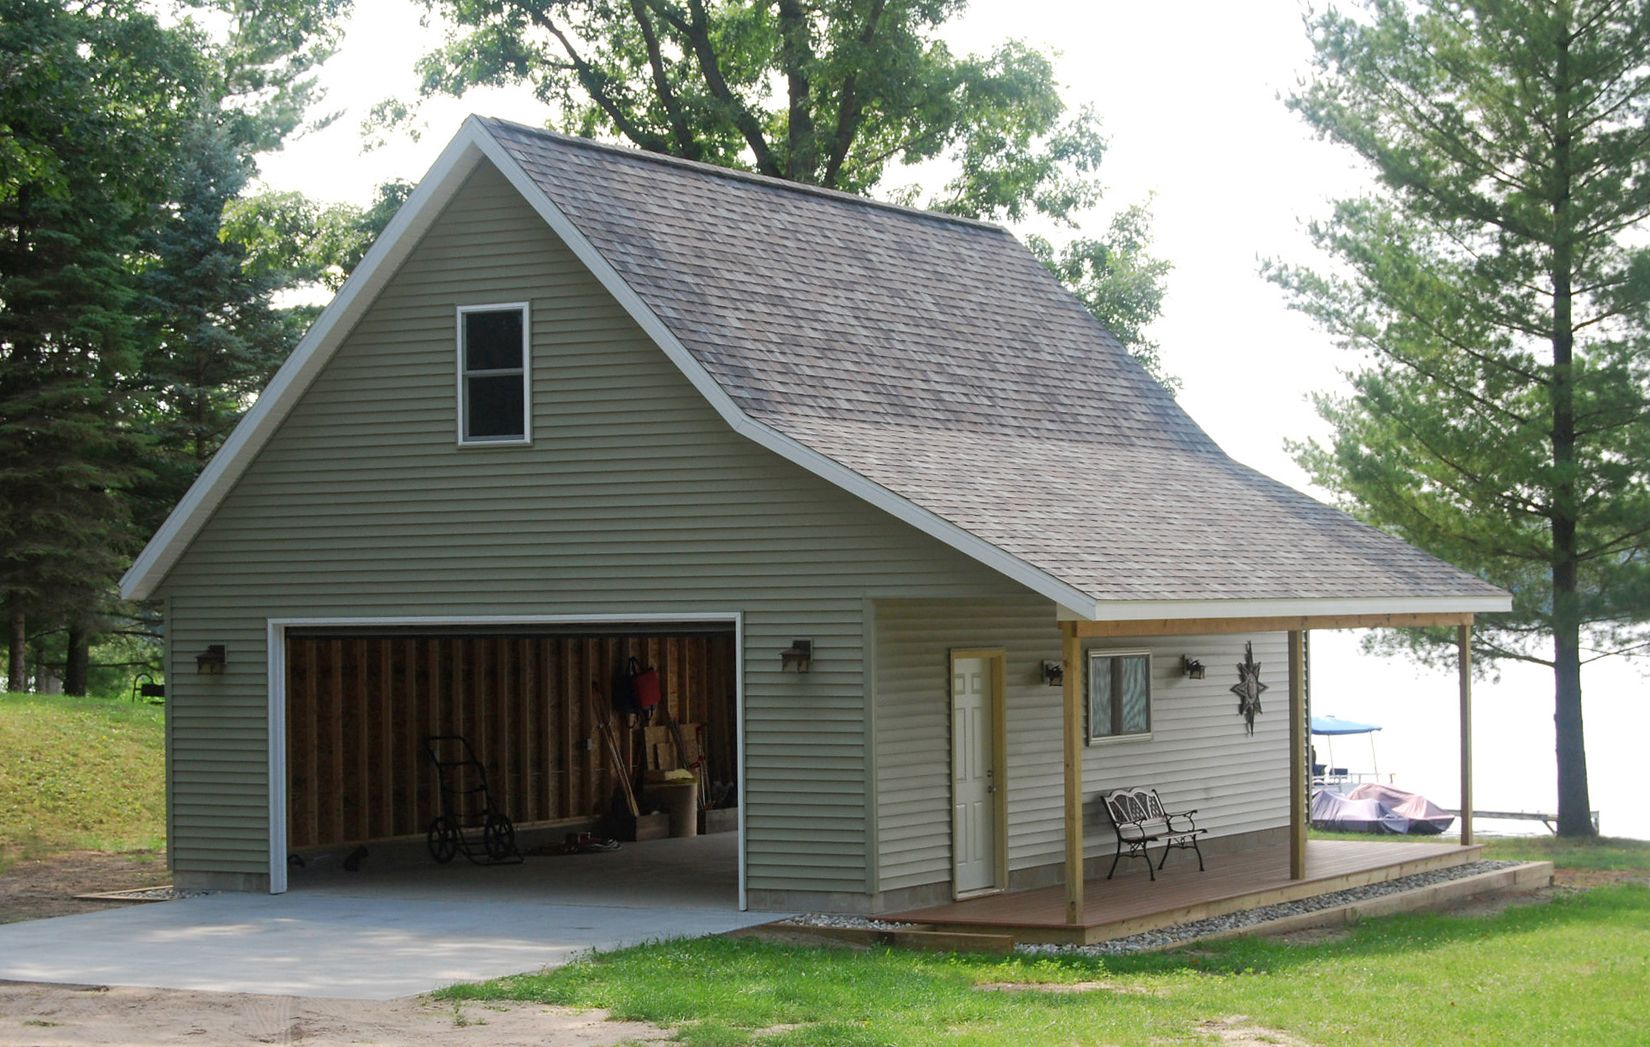 pole barn garage plans | Welcome to JB Custom Homes, where ...